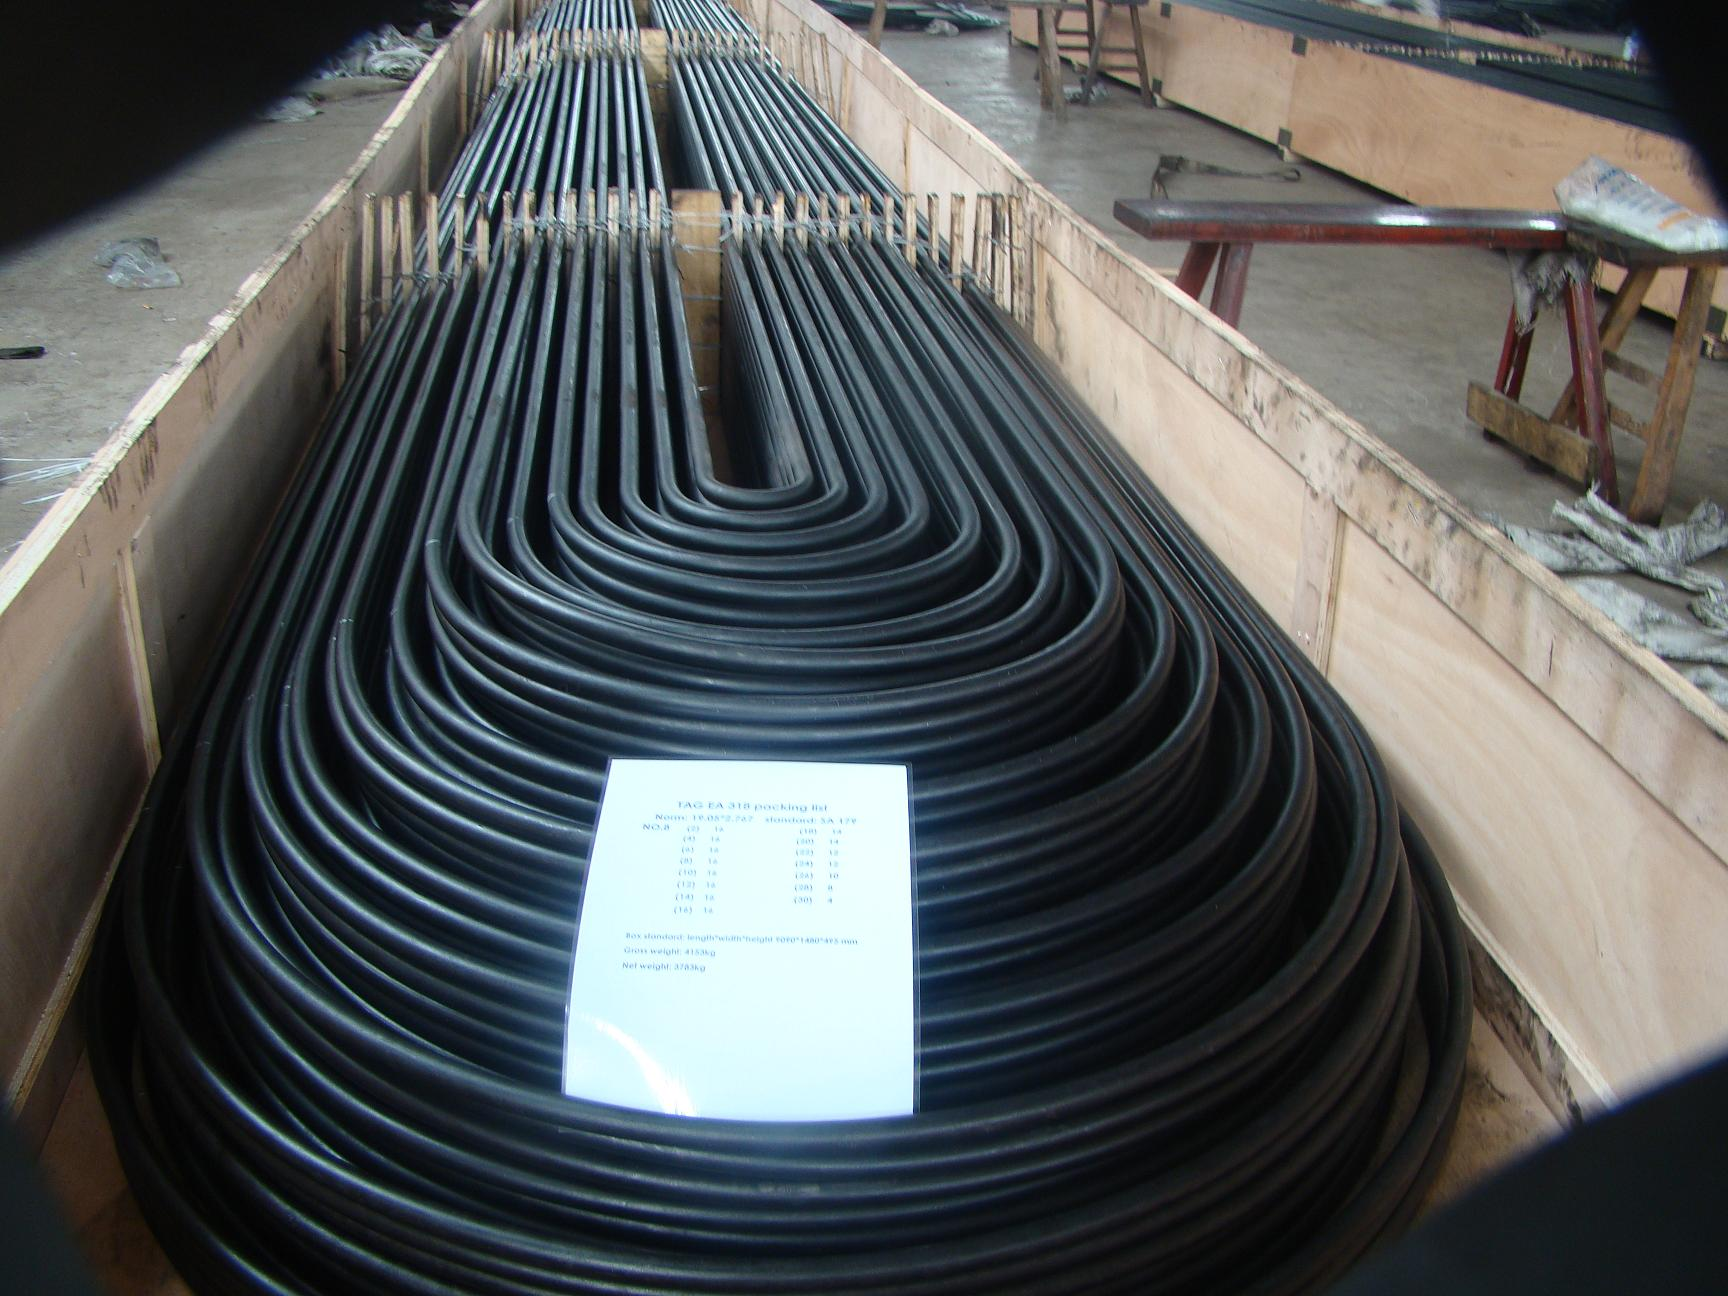 cheap Seamless cold drawn low carbon steel hear exchanger tubes and condenser tubes suppliers